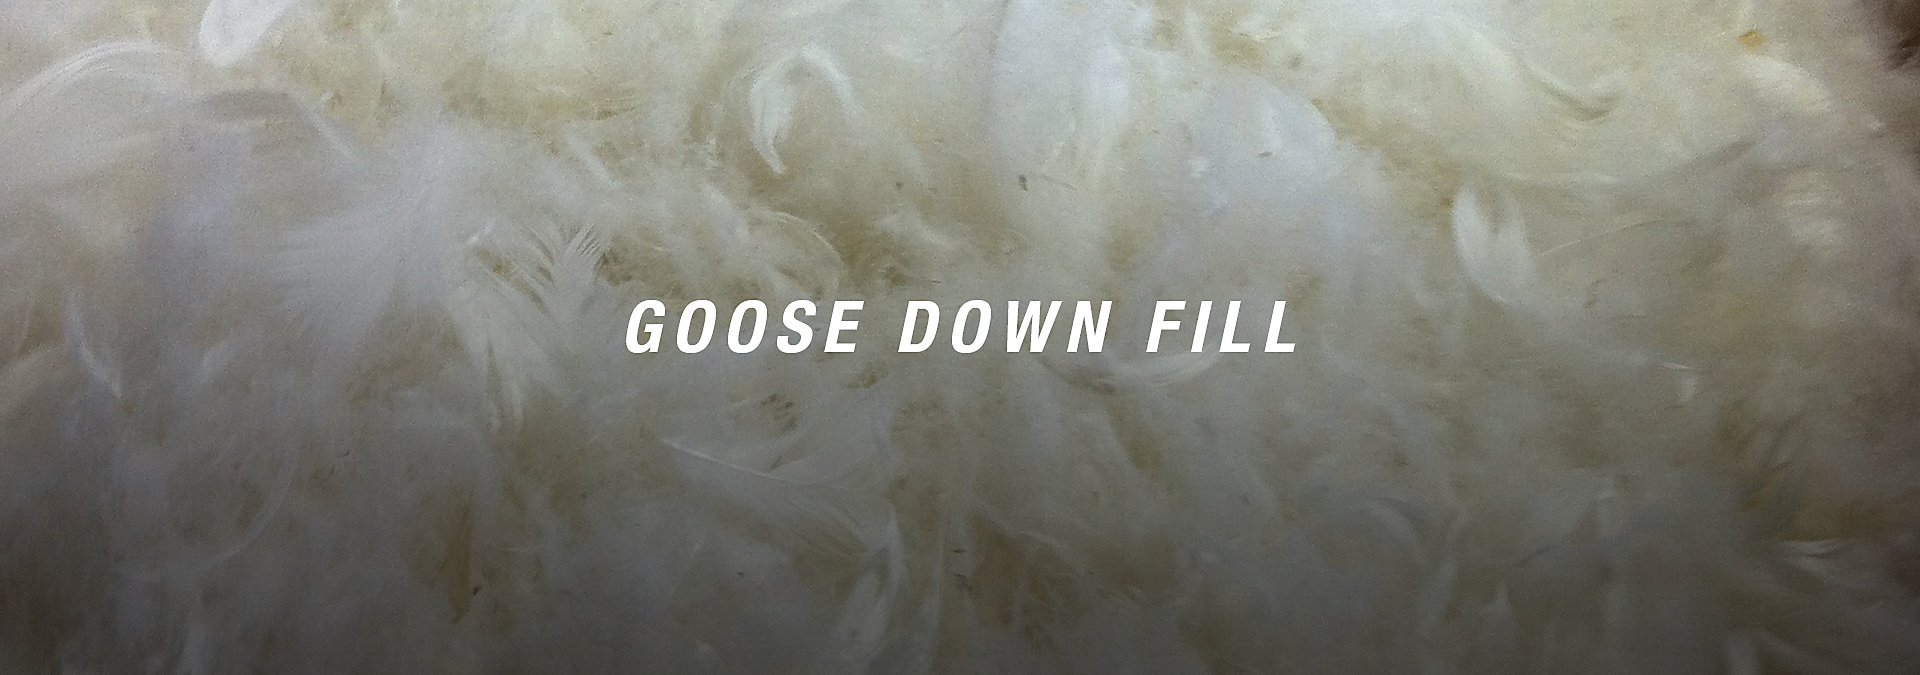 GOOSE DOWN FILL